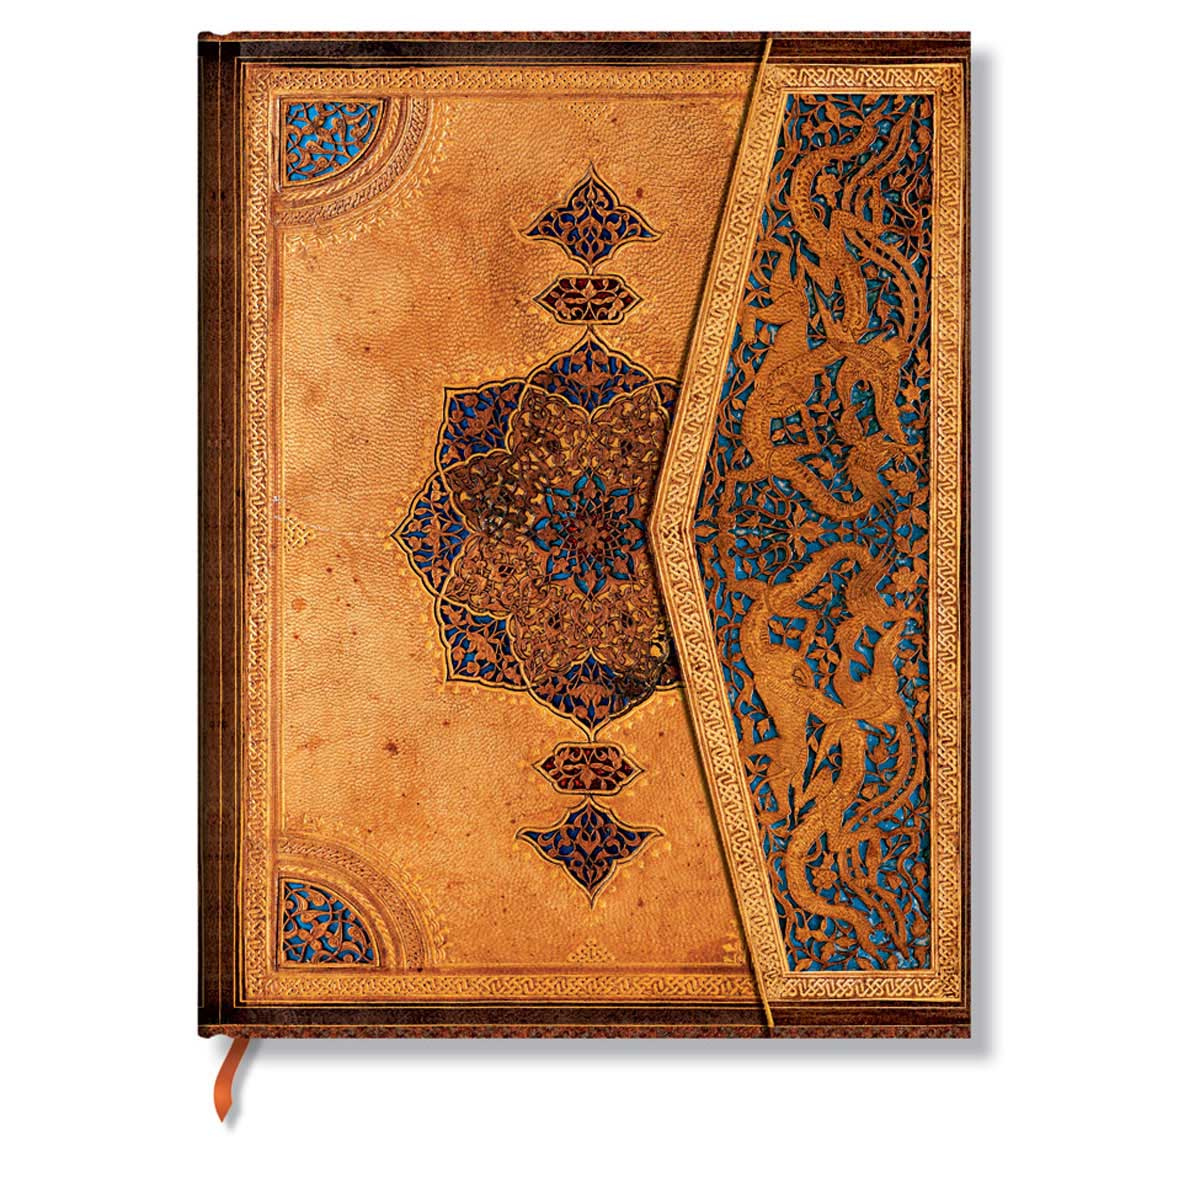 Paperblanks Safavid Ultra 7 x 9 inch Journal